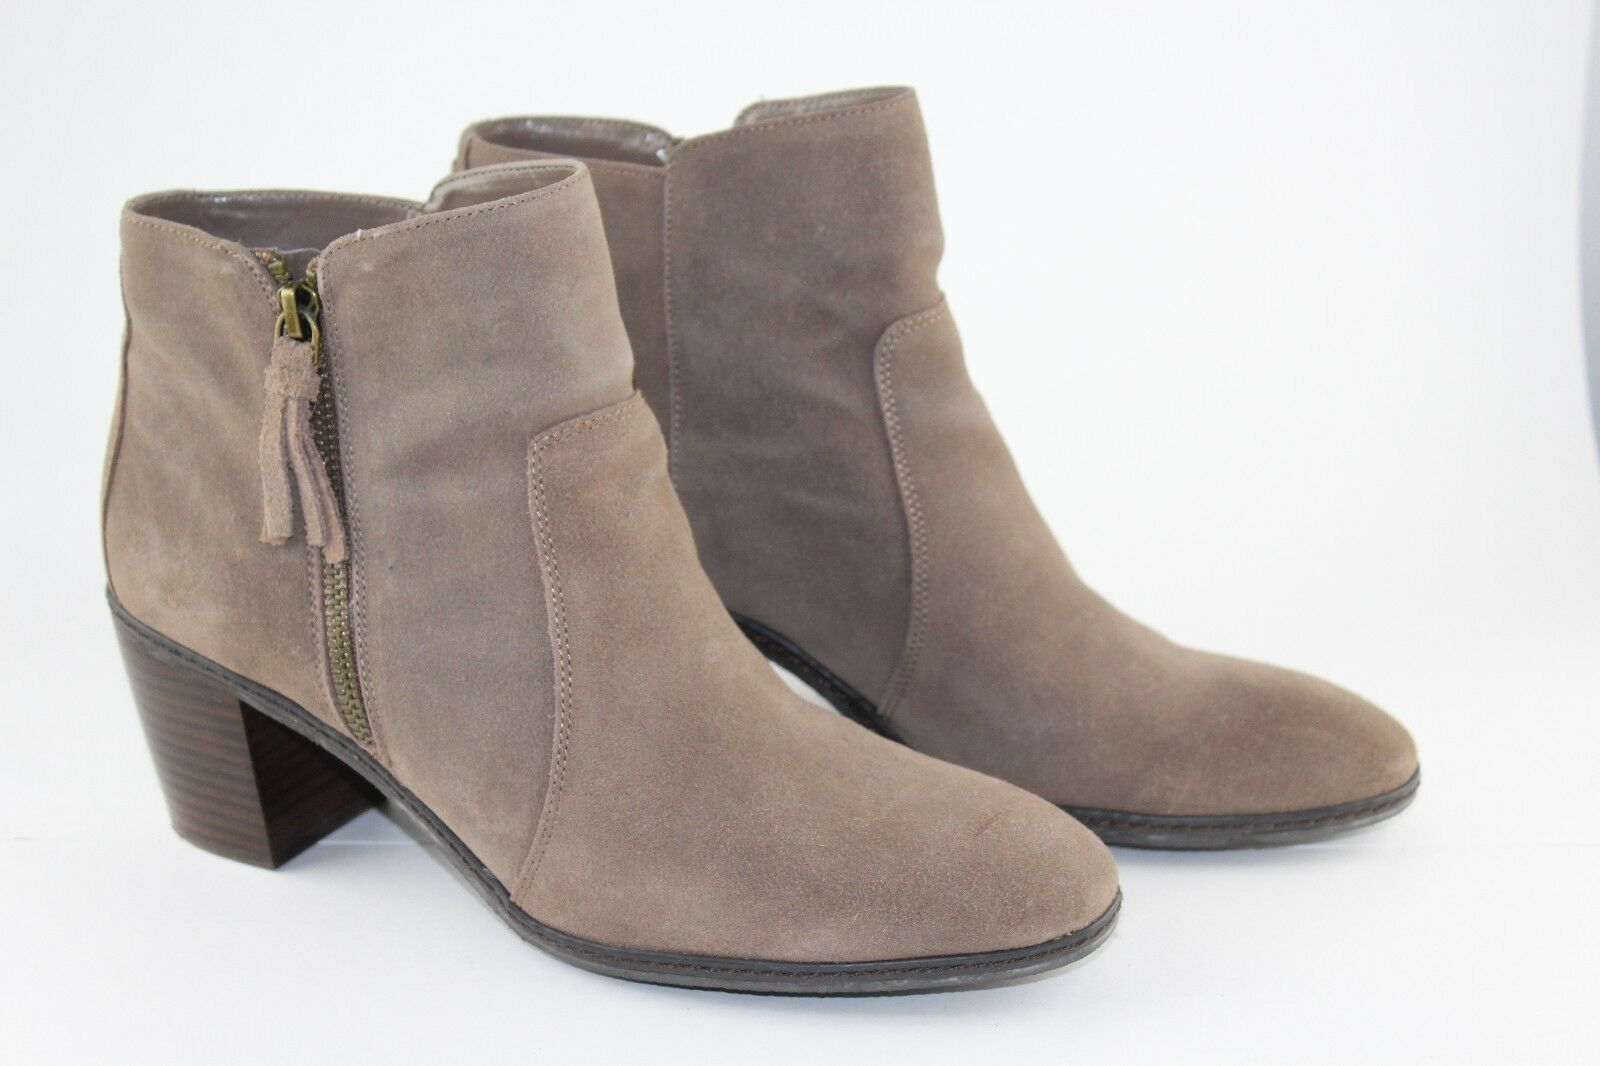 Anne Klein AK Bristle Womens Brown Suede Leather Ankle Boots Size 9M